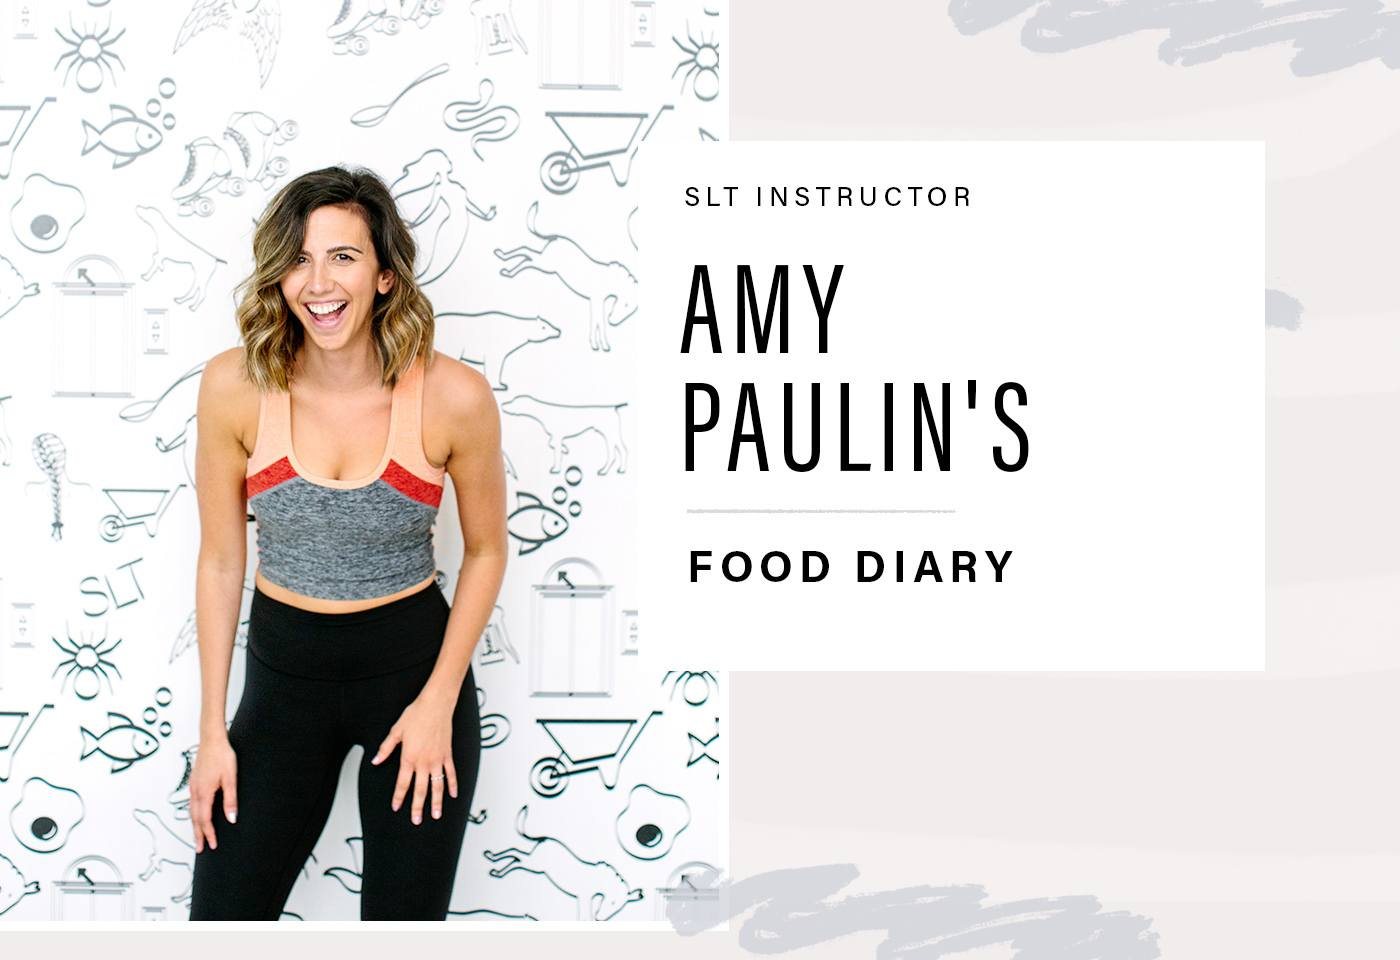 Thumbnail for The Plant-Based Eats That Keep This SLT Instructor Strong Enough for a Day's Worth of Classes